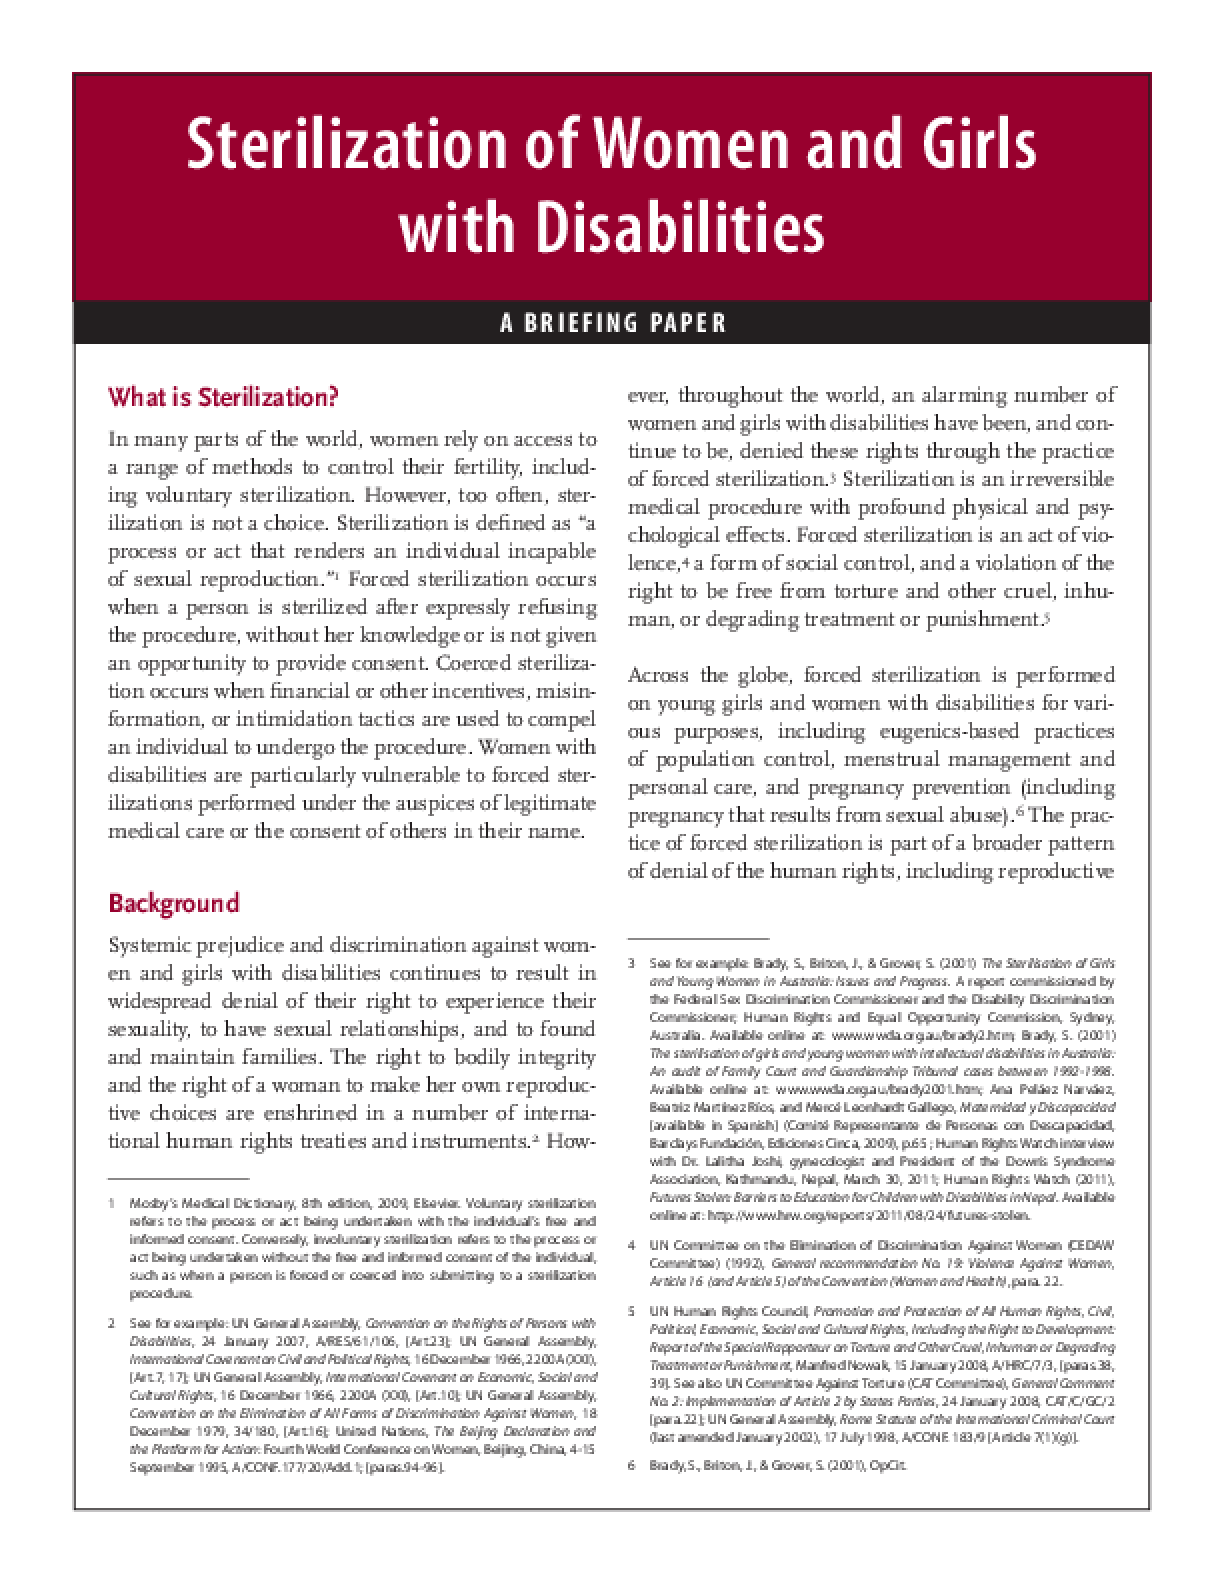 Sterilization of Women and Girls With Disabilities